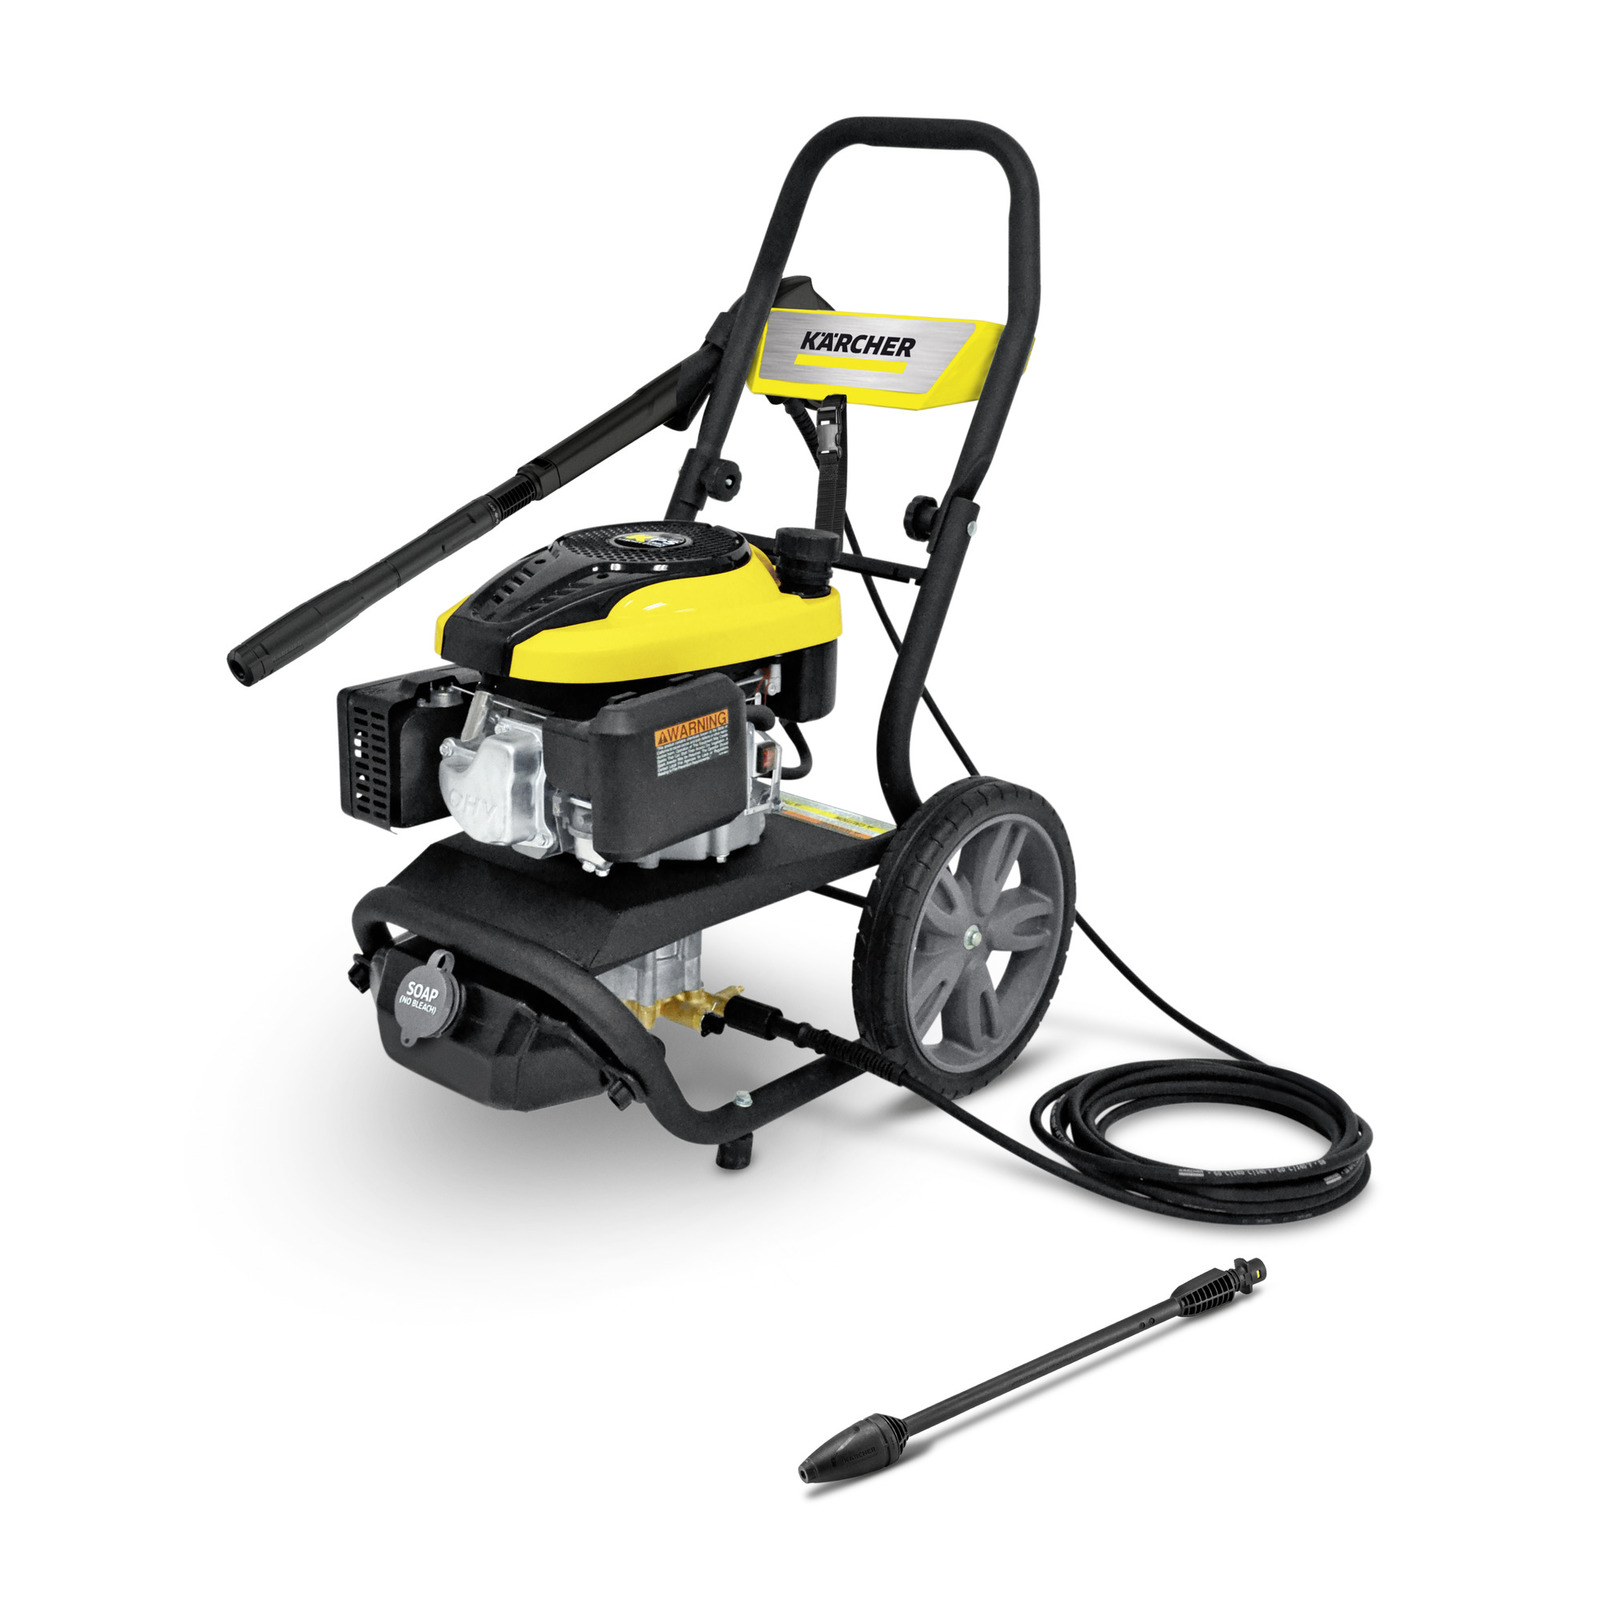 KARCHER 1.107-390.0 - G7. 180 High Pressure Washer